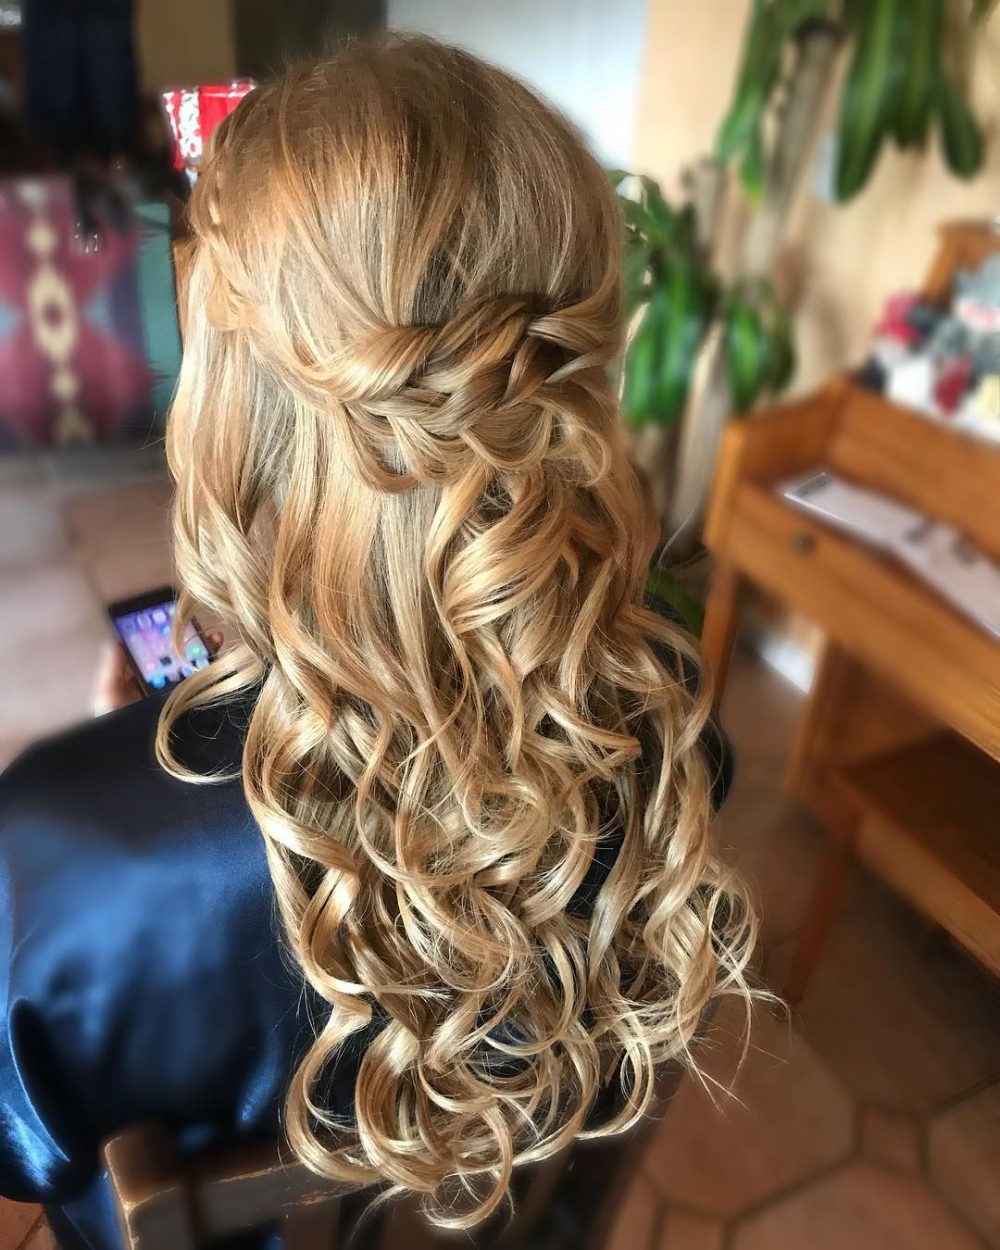 24 Gorgeous Wedding Hairstyles For Long Hair In 2019 With Regard To Most Current Half Up Blonde Ombre Curls Bridal Hairstyles (View 3 of 20)